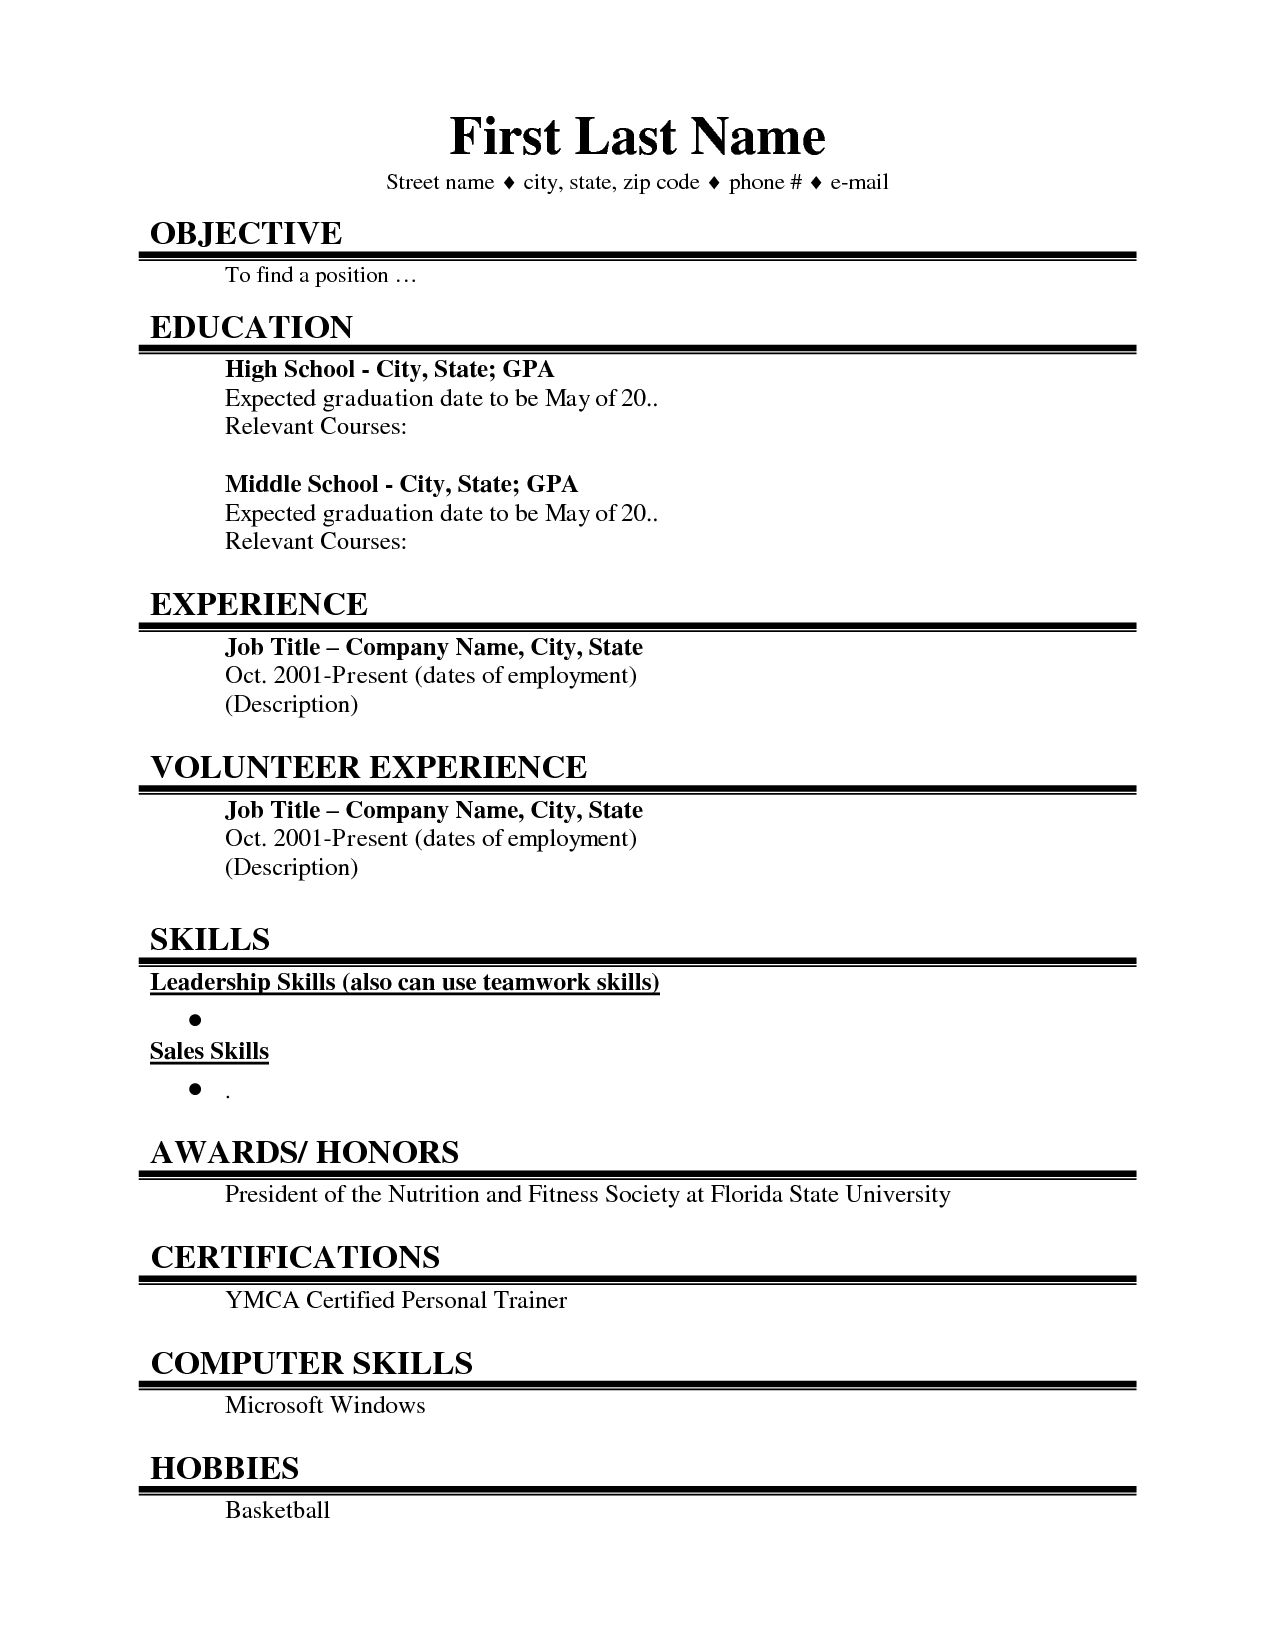 first job resume  Google Search  resume  Job resume template Job resume examples Job resume